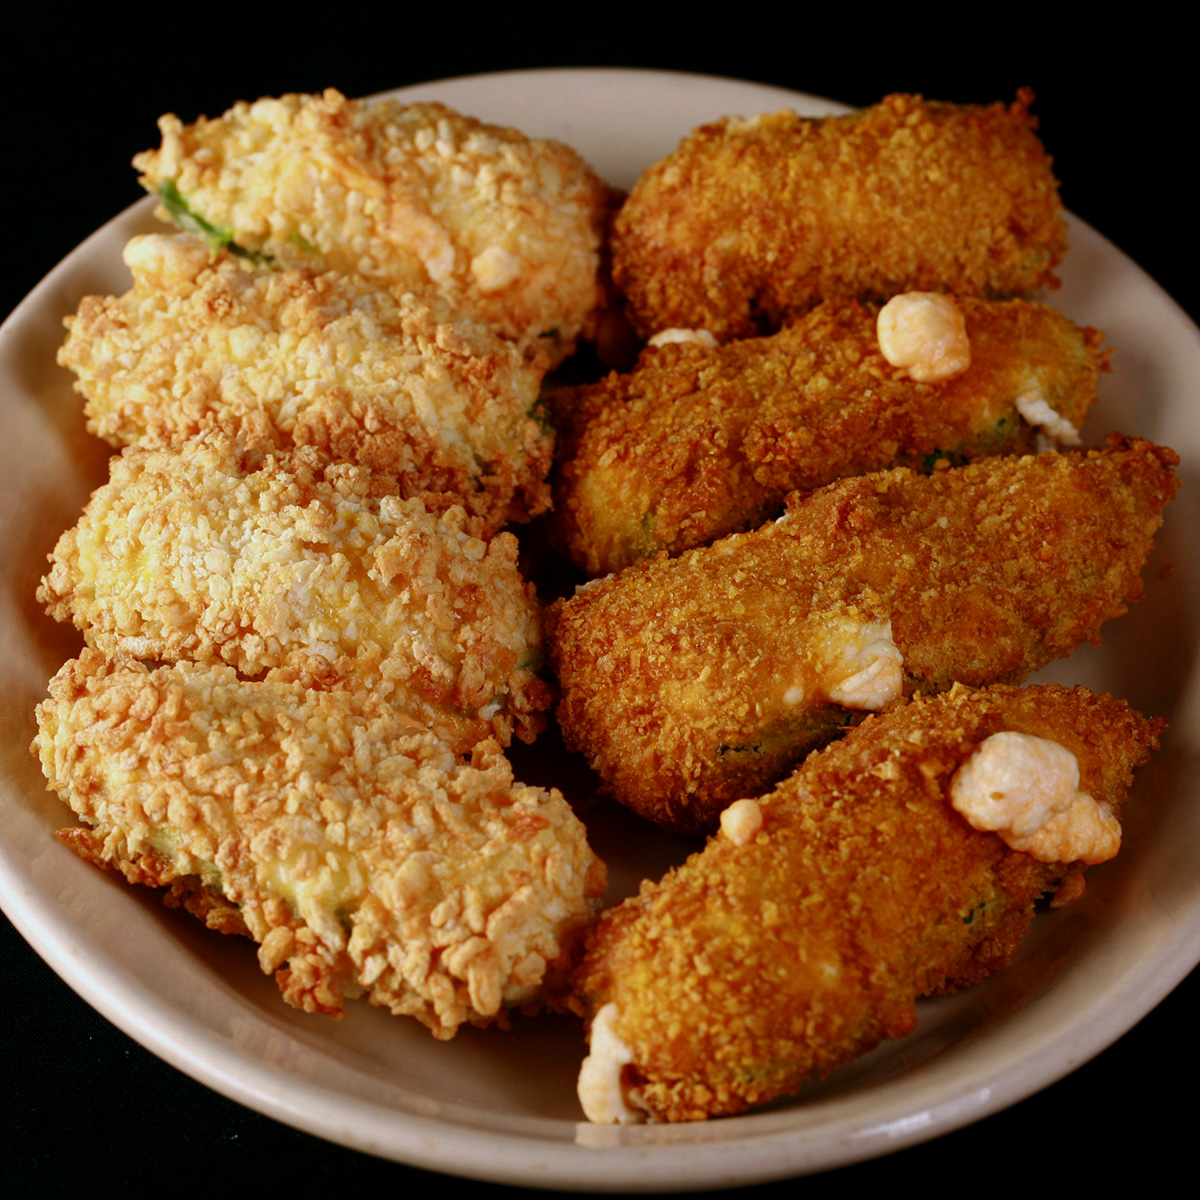 A small ivory colour plate holds two different types of gluten-free jalapeno poppers